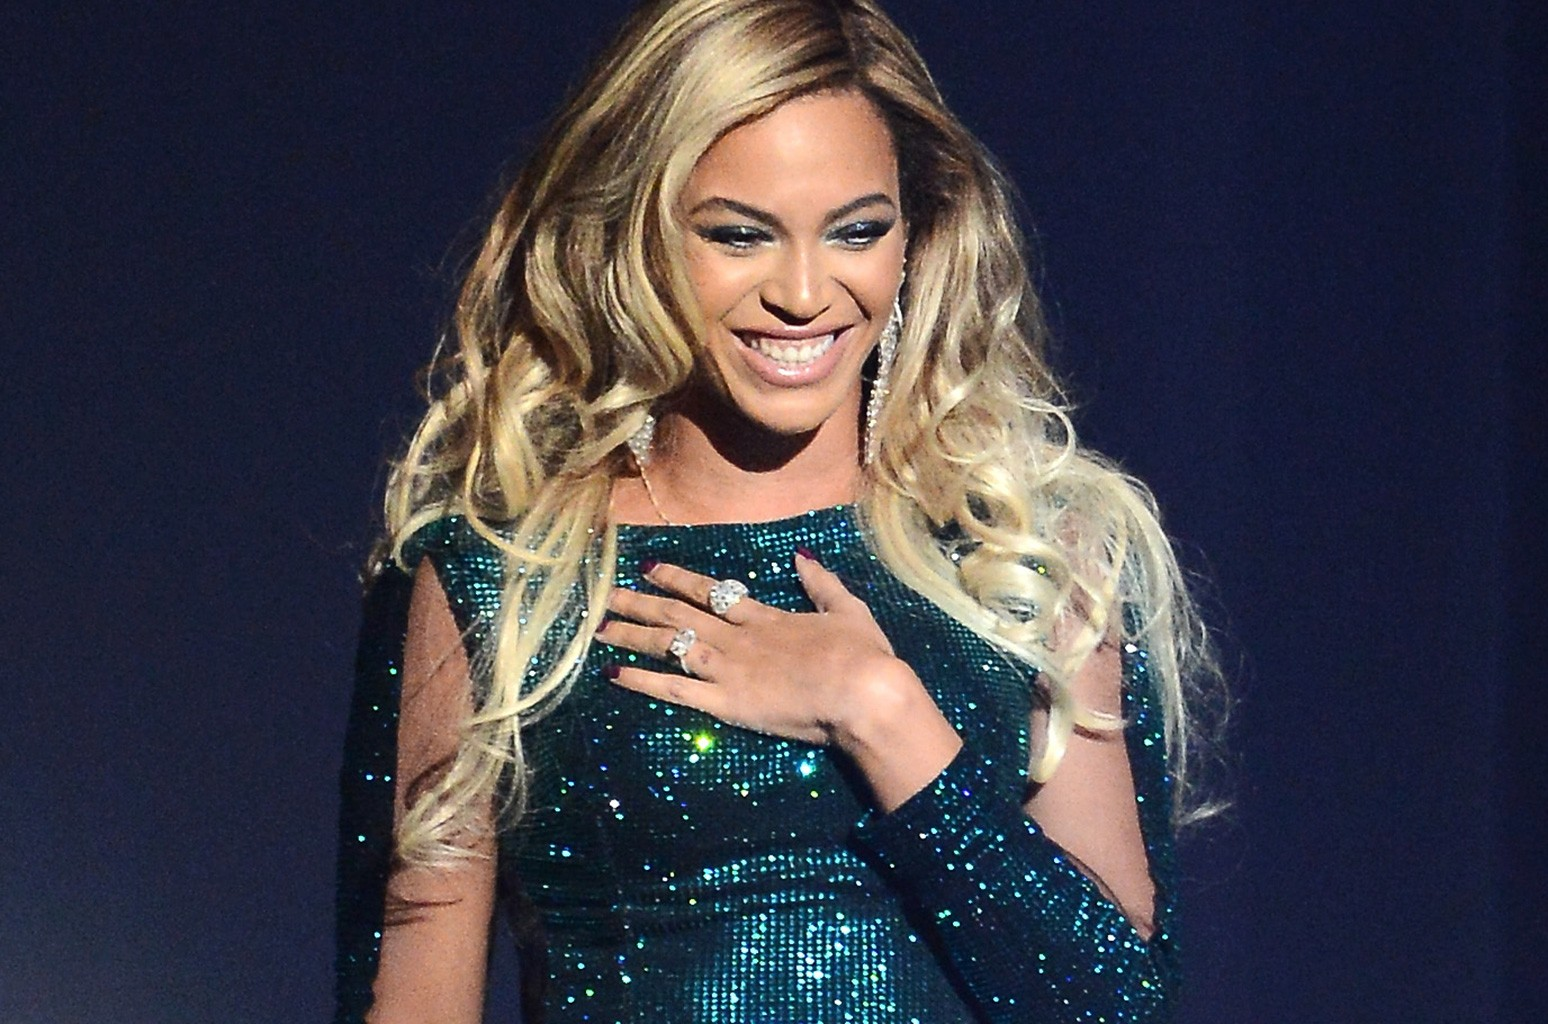 Beyonce  performs at The BRIT Awards 2014 at 02 Arena on Feb. 19, 2014 in London.